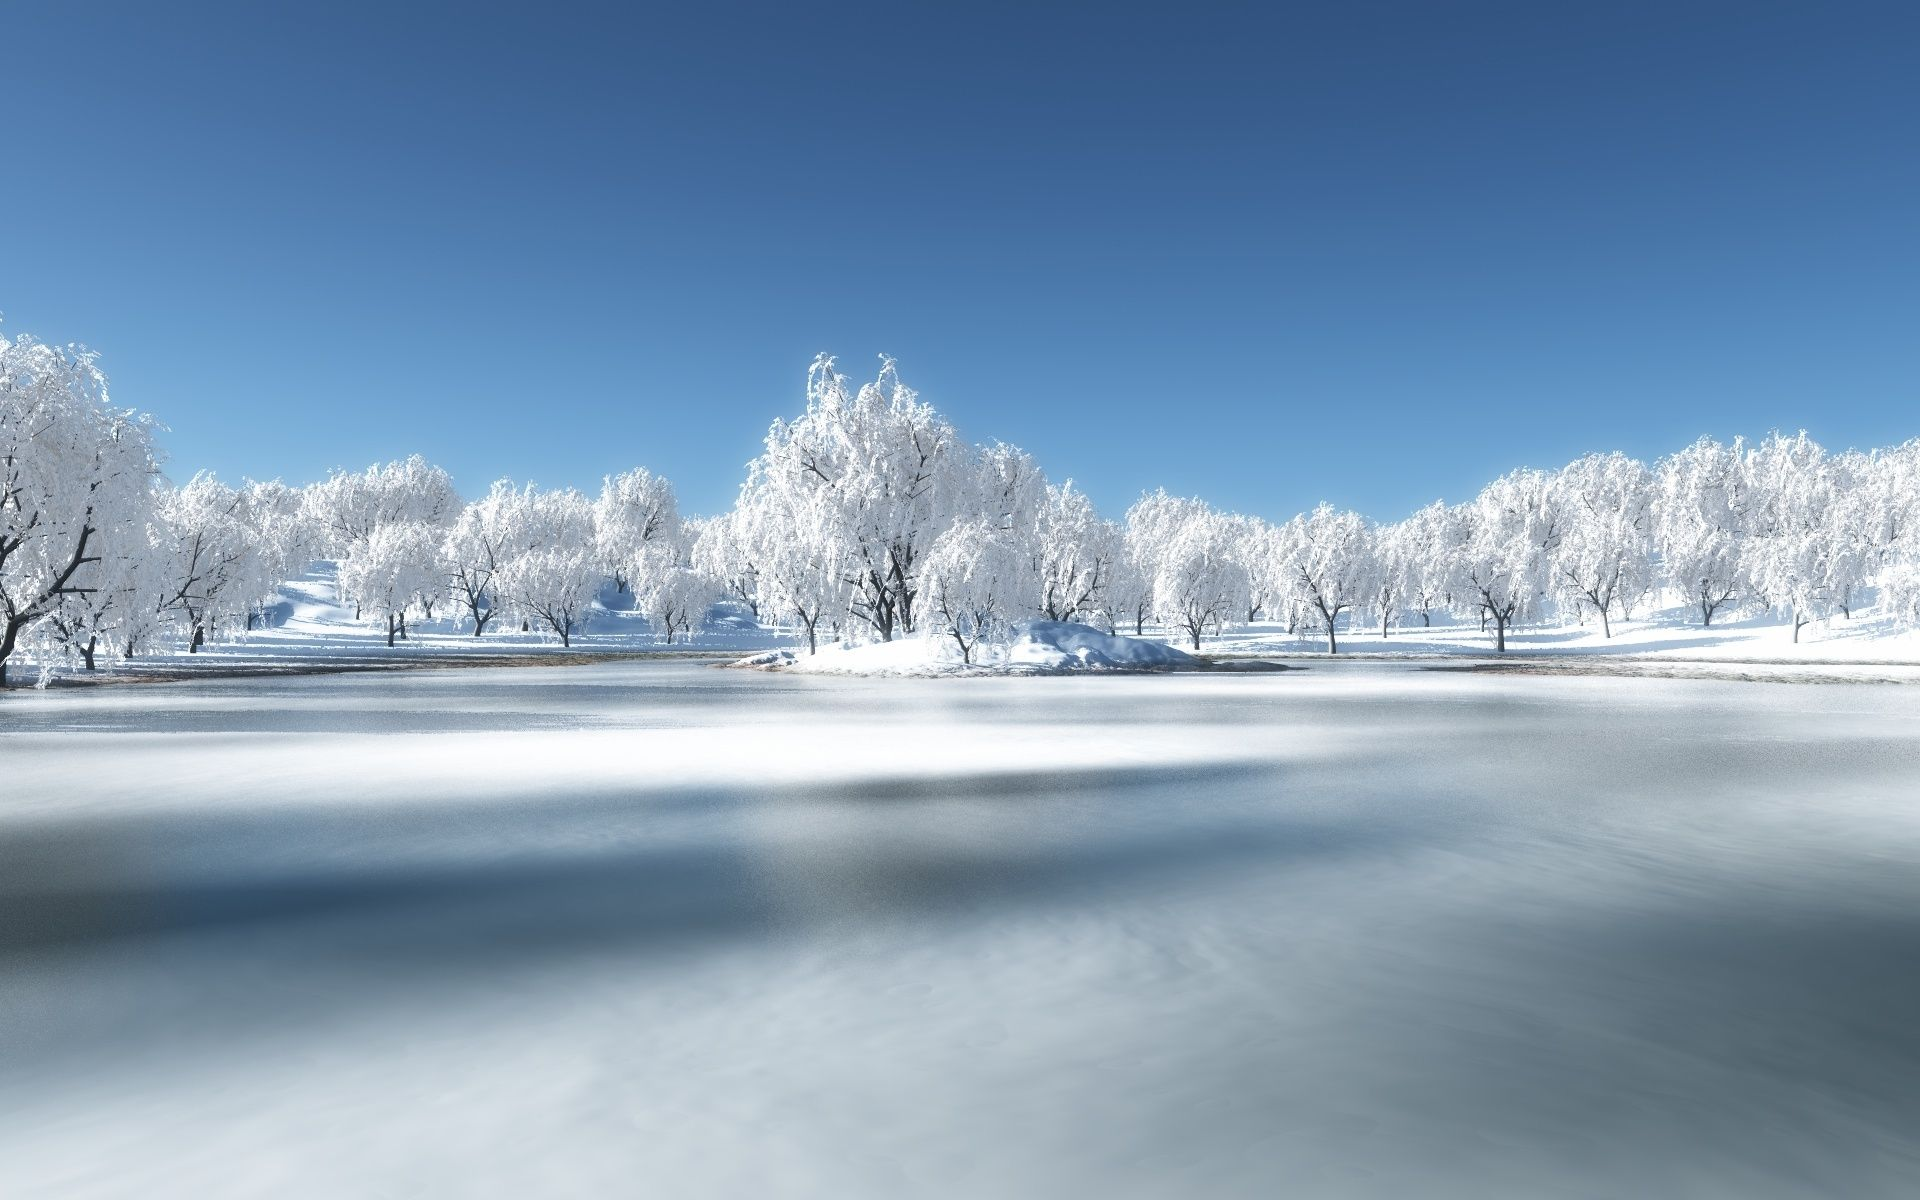 Winter Landscape Wallpapers wallpapers 2020 Beautiful nature 1920x1200